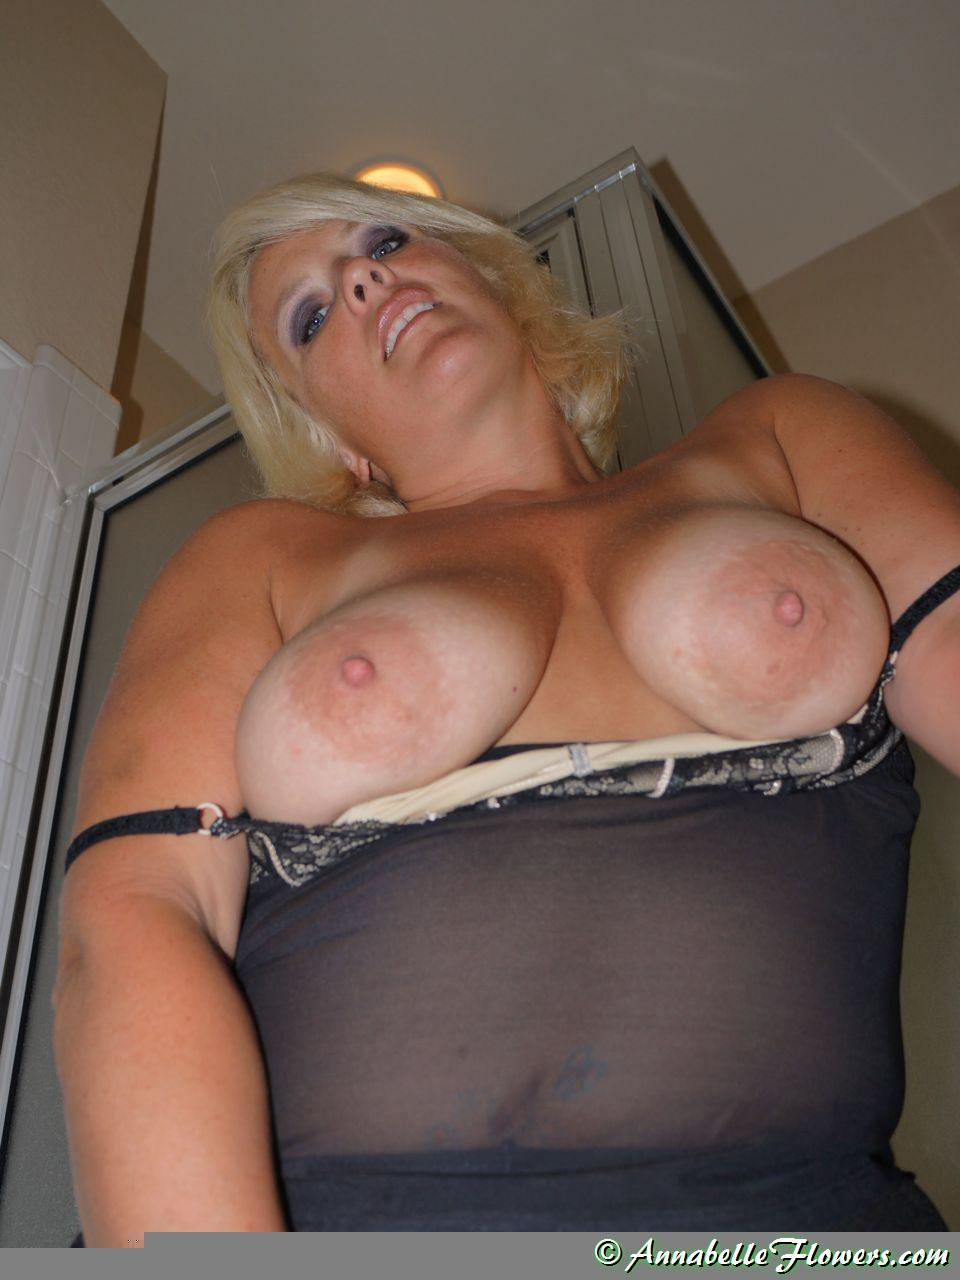 giant boob video share cock